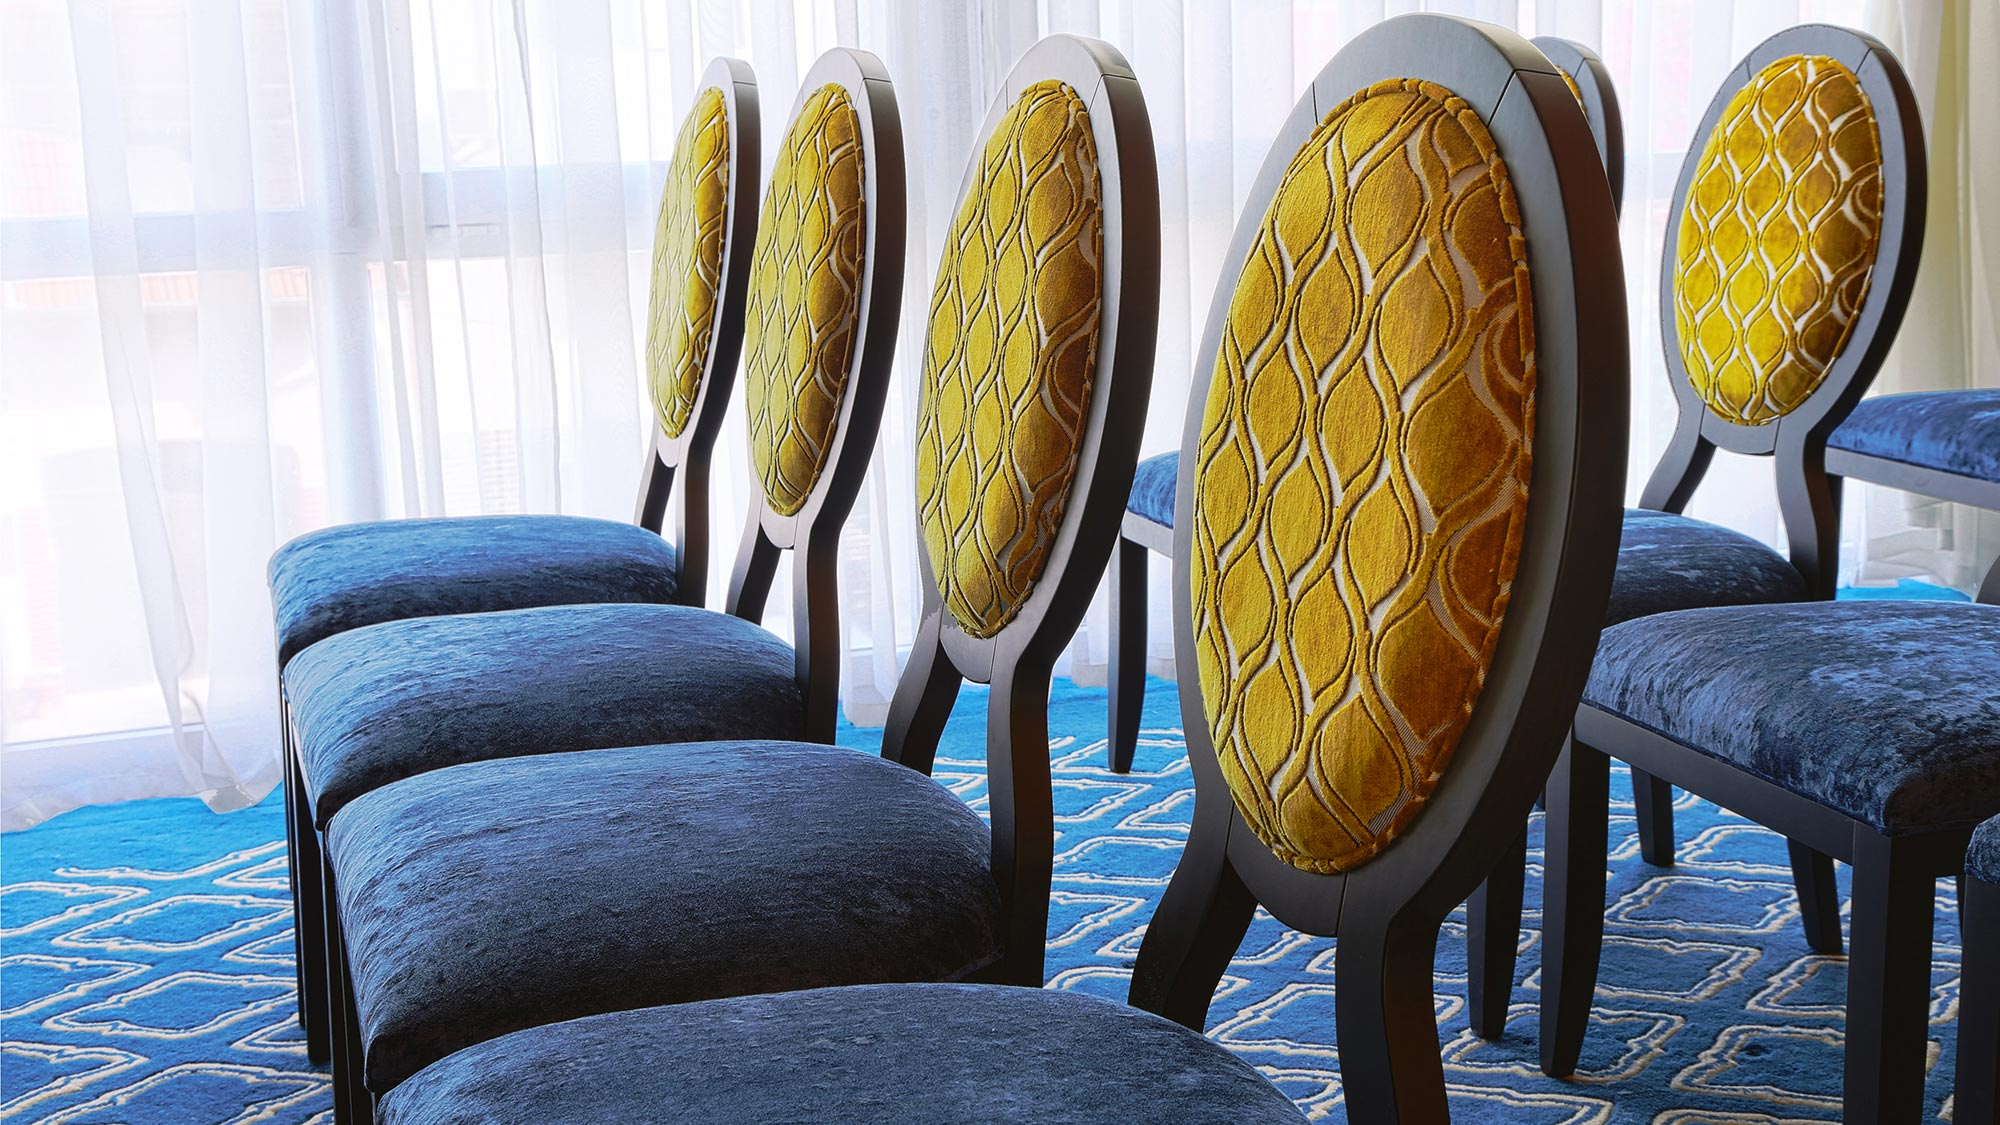 Close picture showing the details of a few Anello chairs upholstered in a two tone blue and yellow velvet. Hi quality contemporary dining chairs, 100% made in Italy